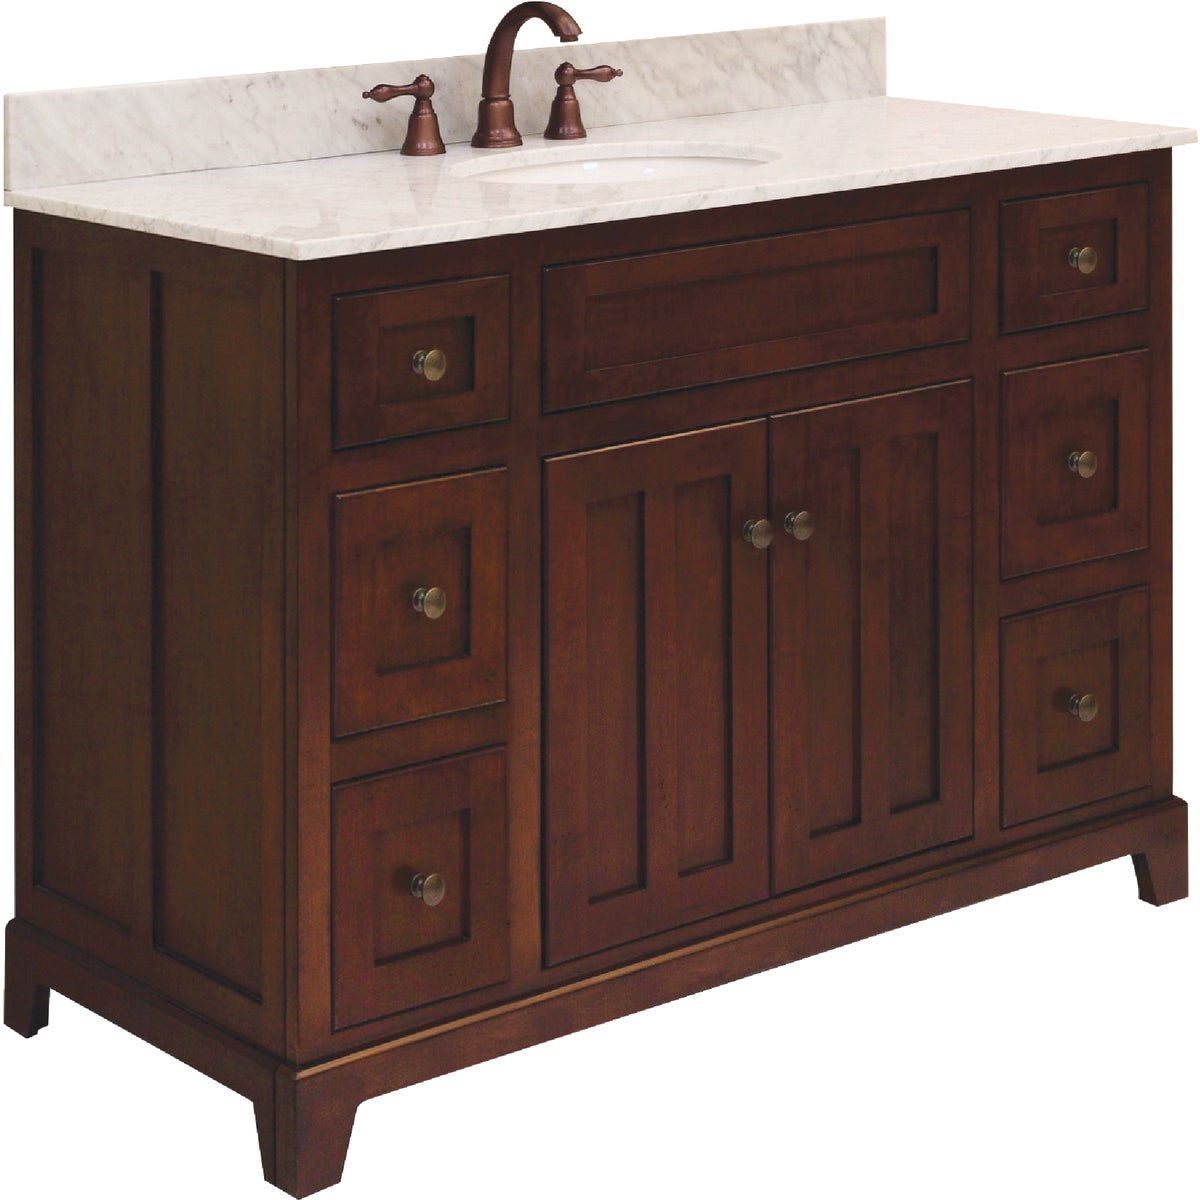 "48"" GRAND HAVEN VANITY - GH4821D by Sunnywood Products"